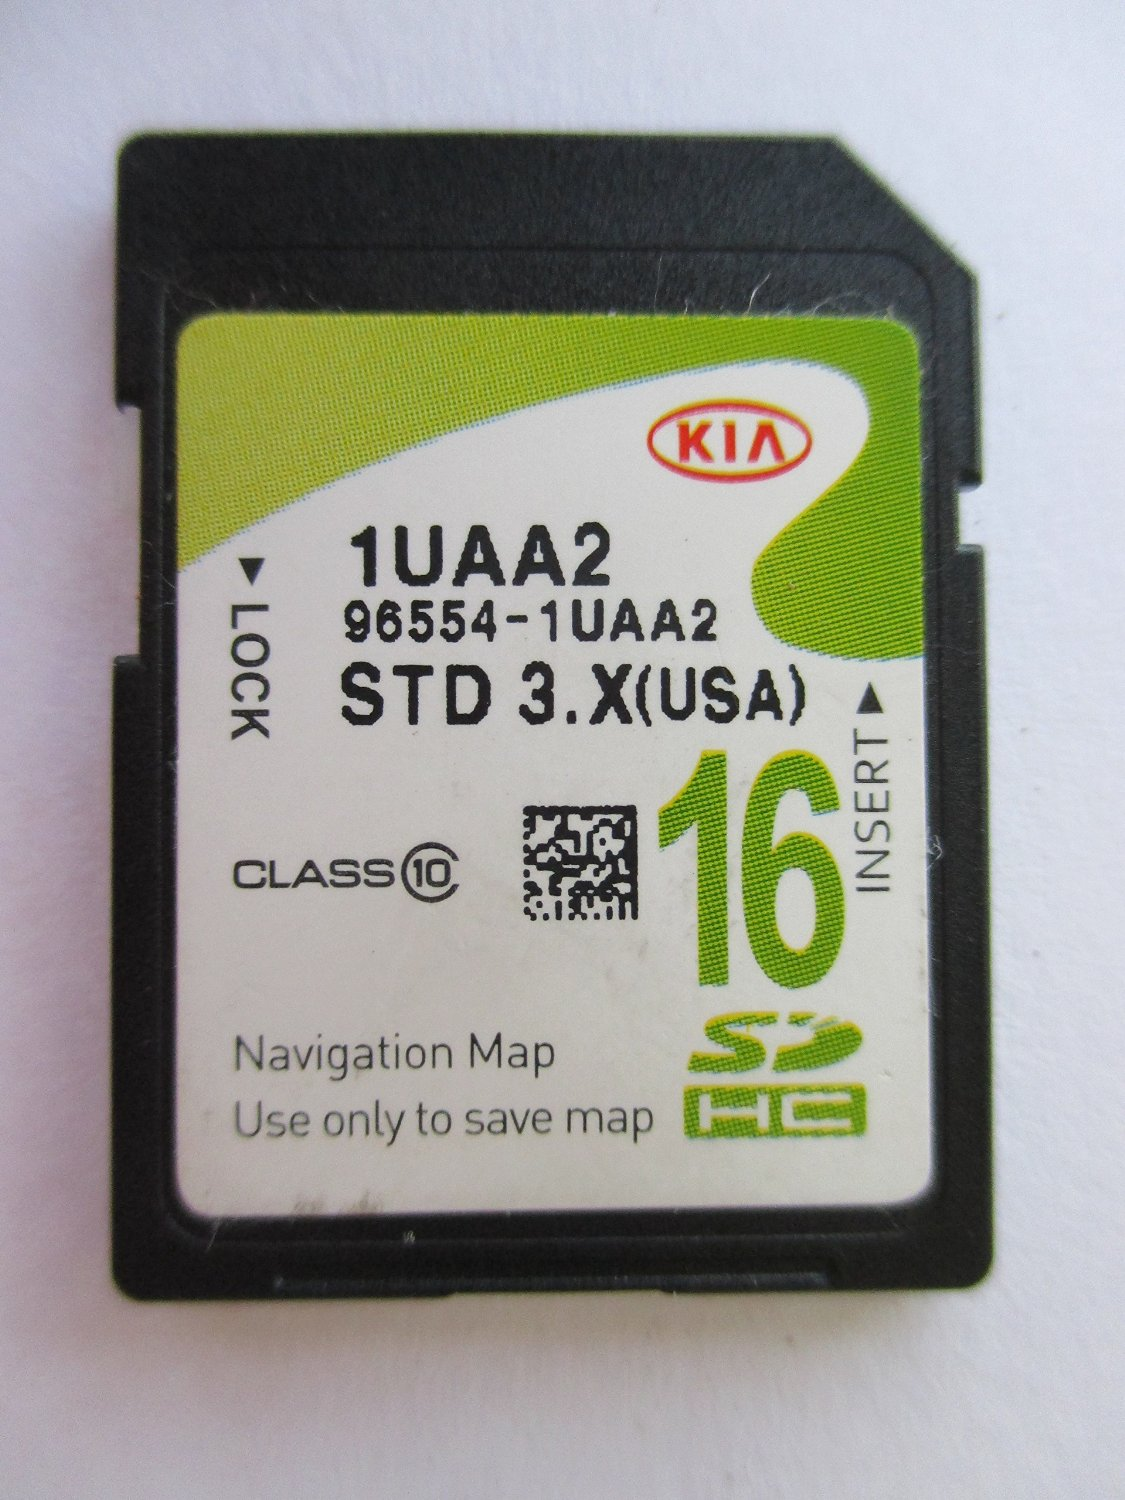 1UAA2 2012 2013 2014 2015 KIA SORENTO Navigation MAP Sd Card ,GPS, U.S.A OEM PART # 96554-1UAA2 16GB STD 3.X